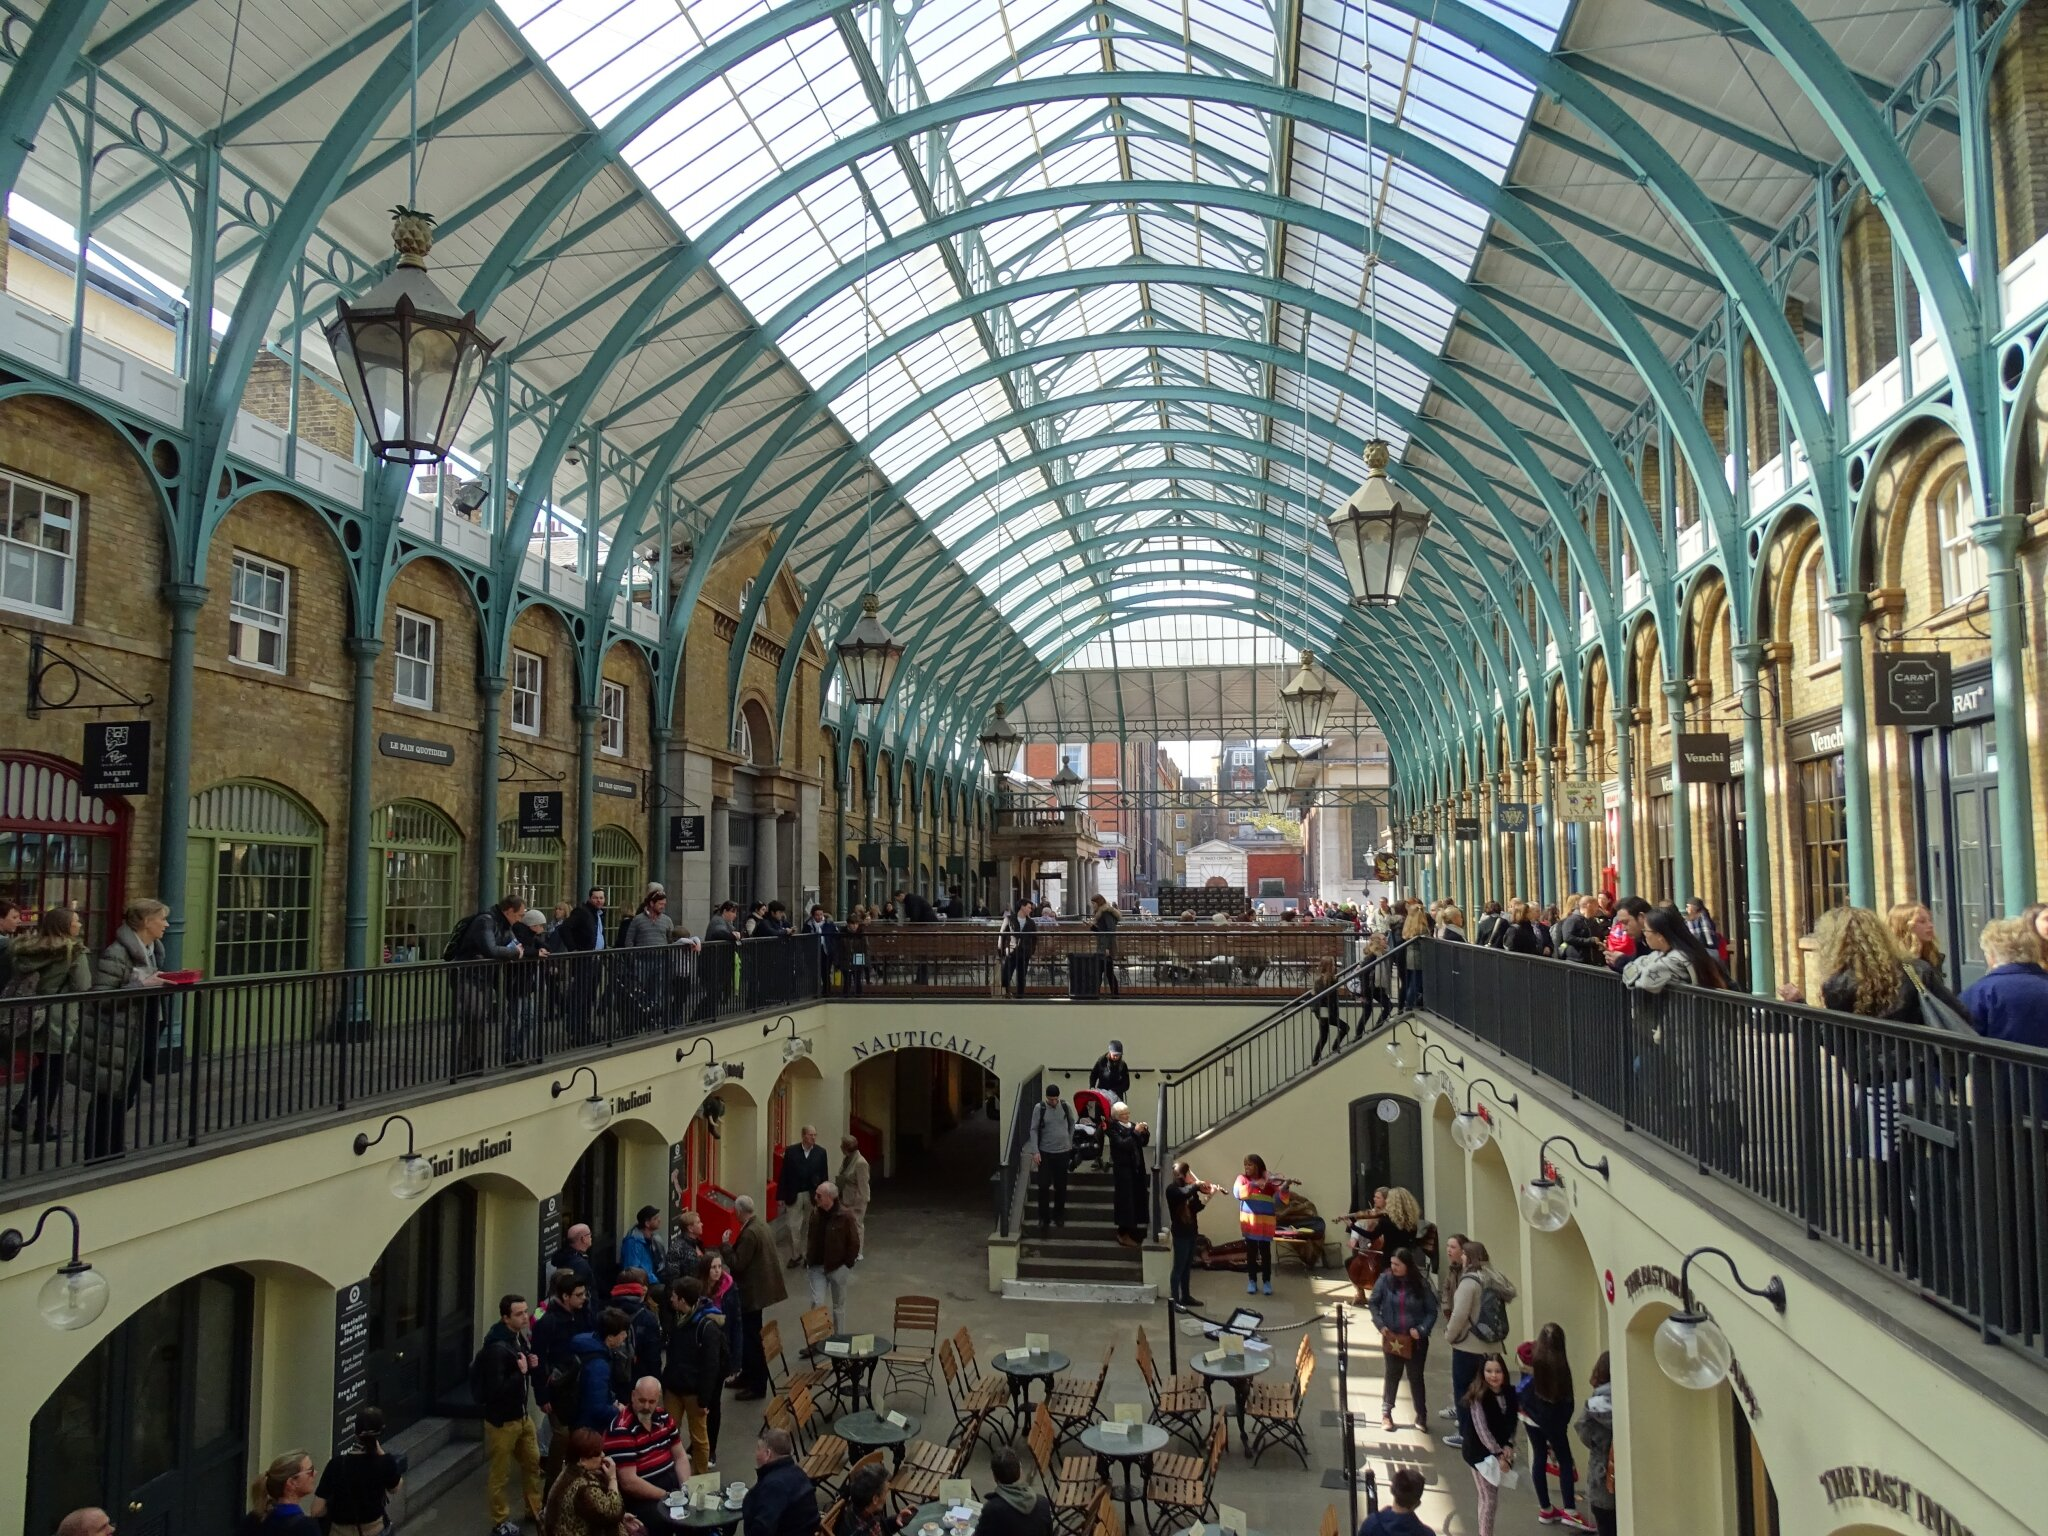 London from burlington arcade to royal opera arcade la petite fut e brestoise - Le petit jardin covent garden metz ...